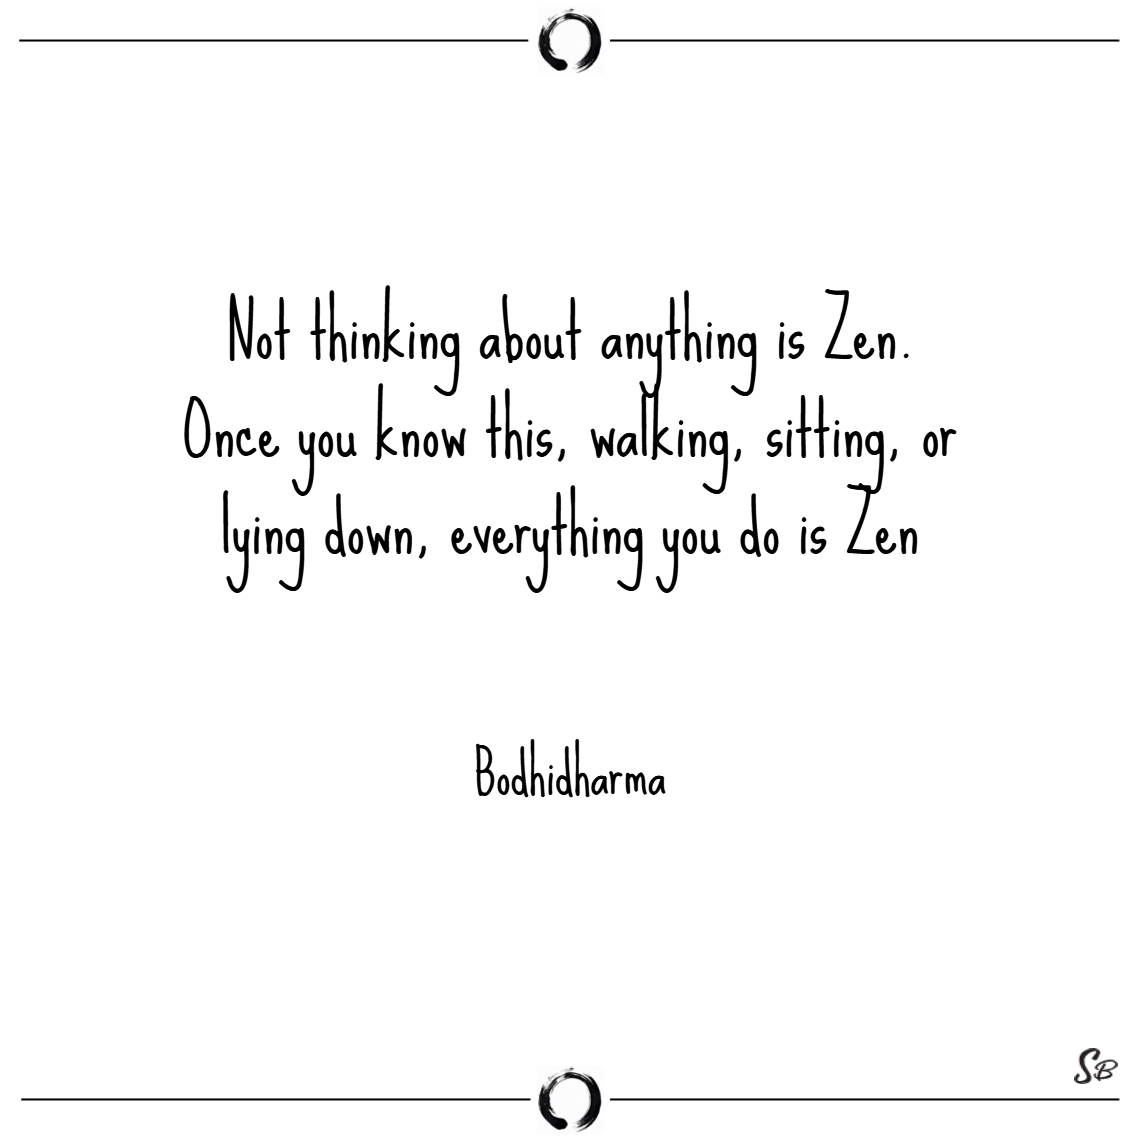 Not thinking about anything is zen. once you know